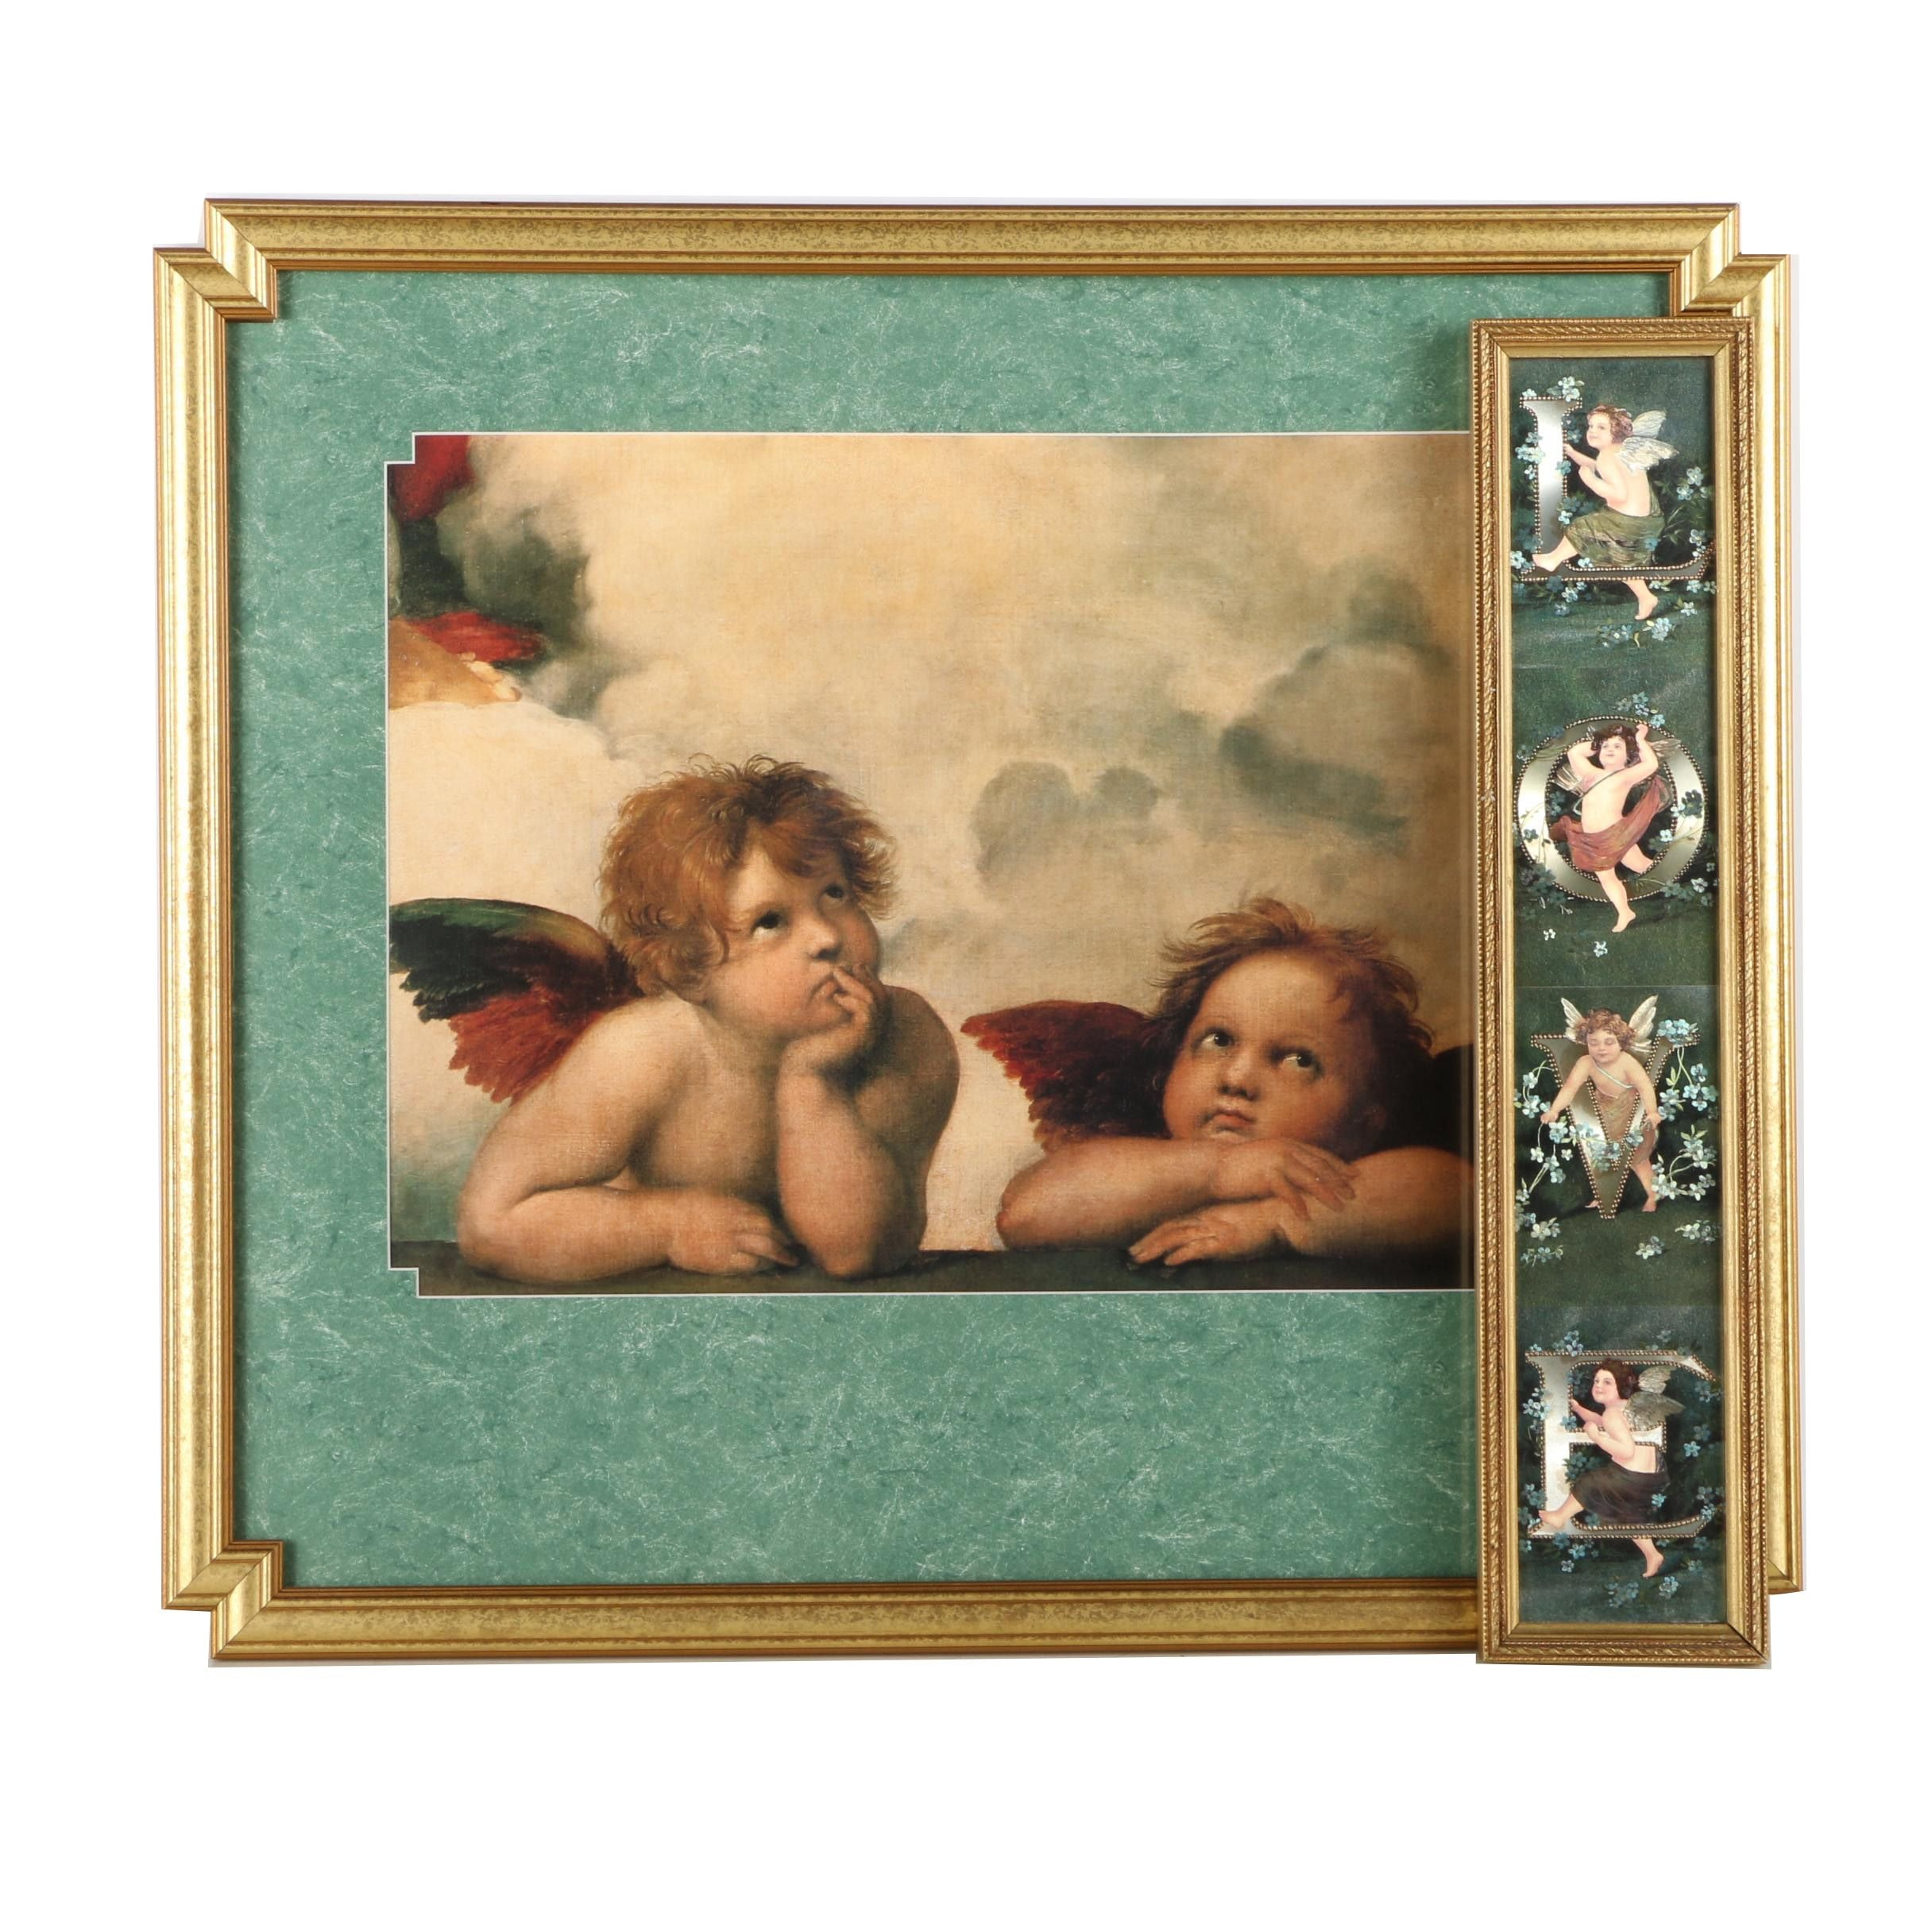 After Raphael Offset Lithograph on Paper of Angels and Offset Lithographs on Foil and Paper Postcards After Irenco Robert Bier